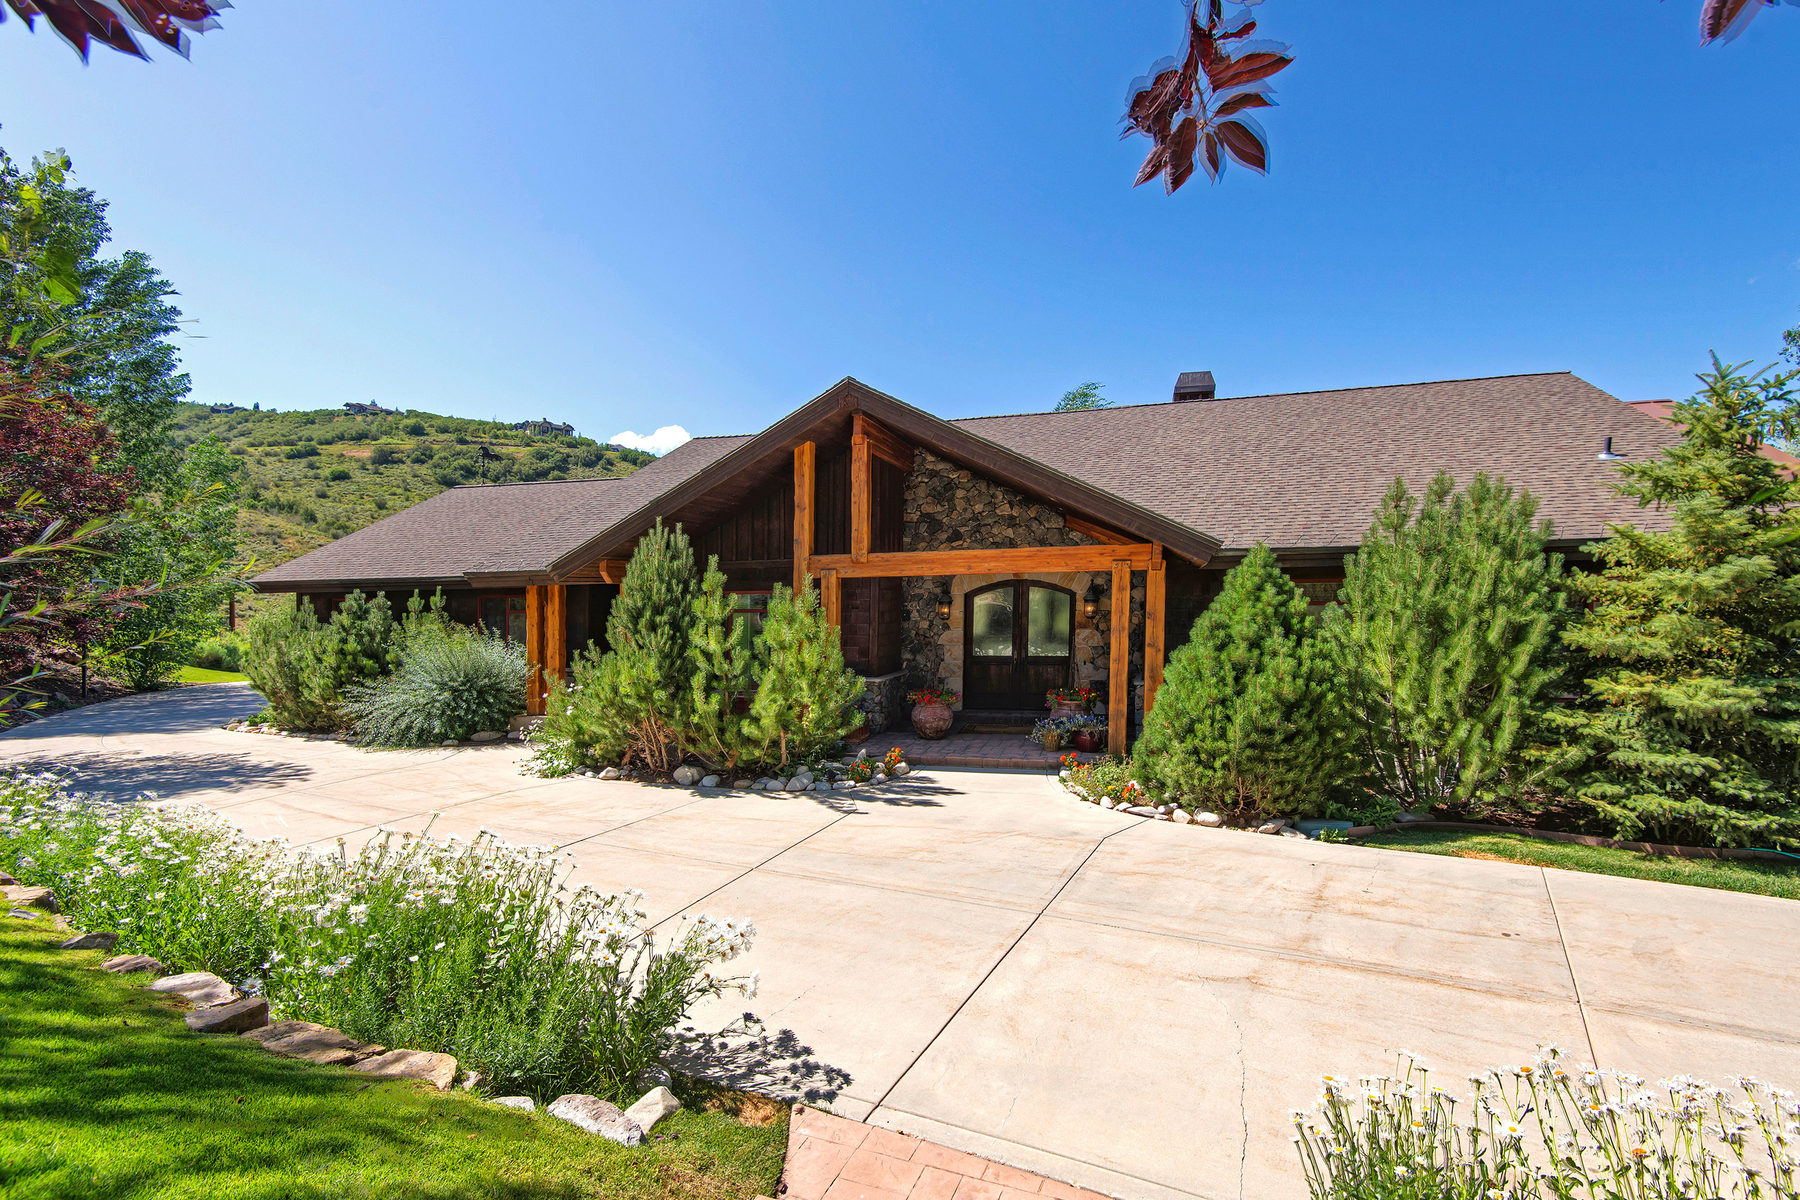 Single Family Home for Sale at Mountain Golf Course Masterpiece 3950 W Lariat Rd Park City, Utah 84098 United States